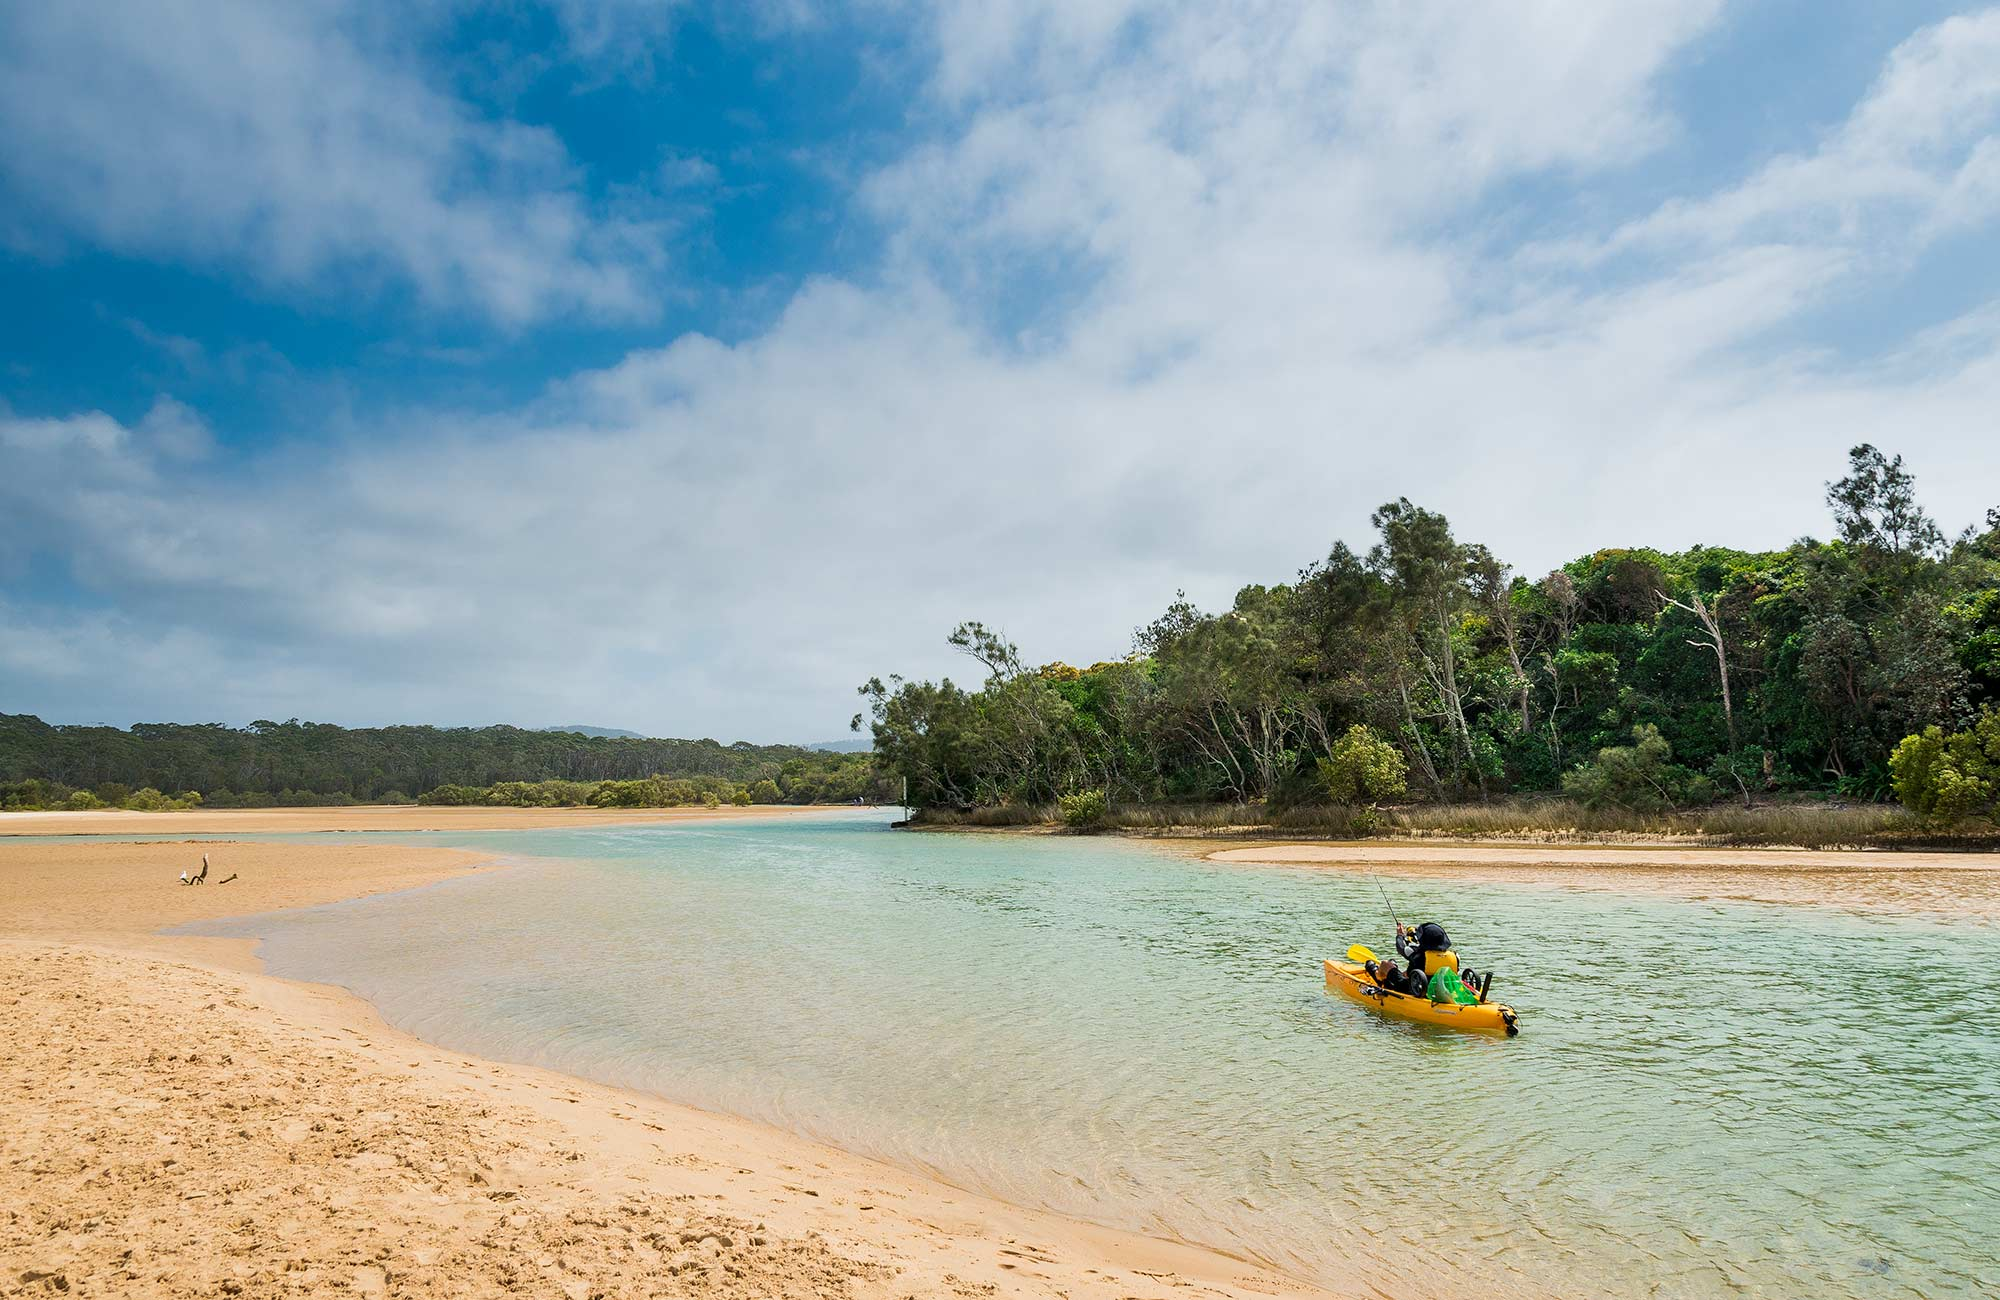 Mooneed Creek, Moonee Beach Nature Reserve. Photo: David Young